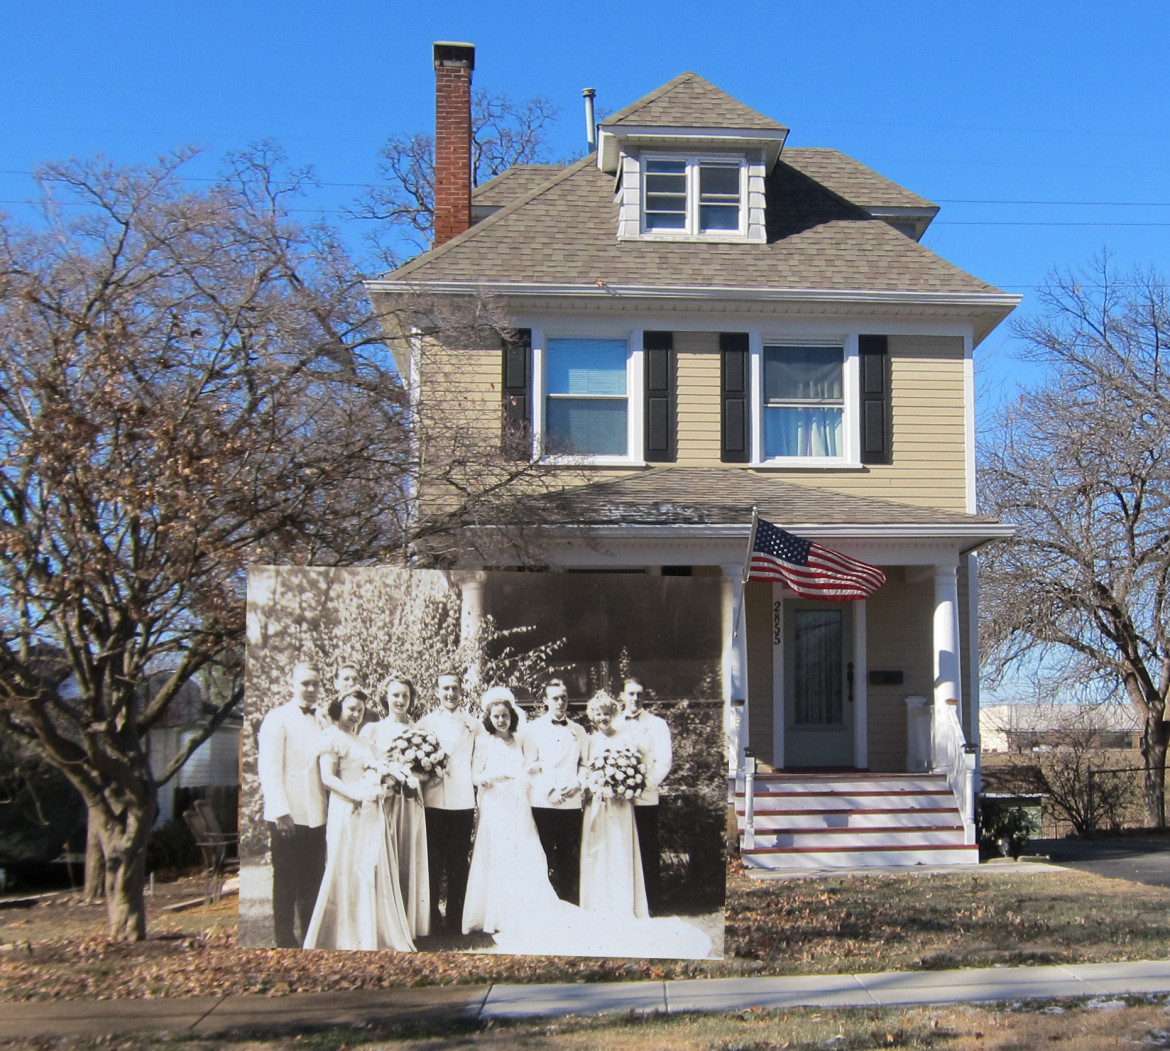 The wedding party superimposed on a recent image of the home.  I think Marjorie would have to be pleased with the condition of her home today.